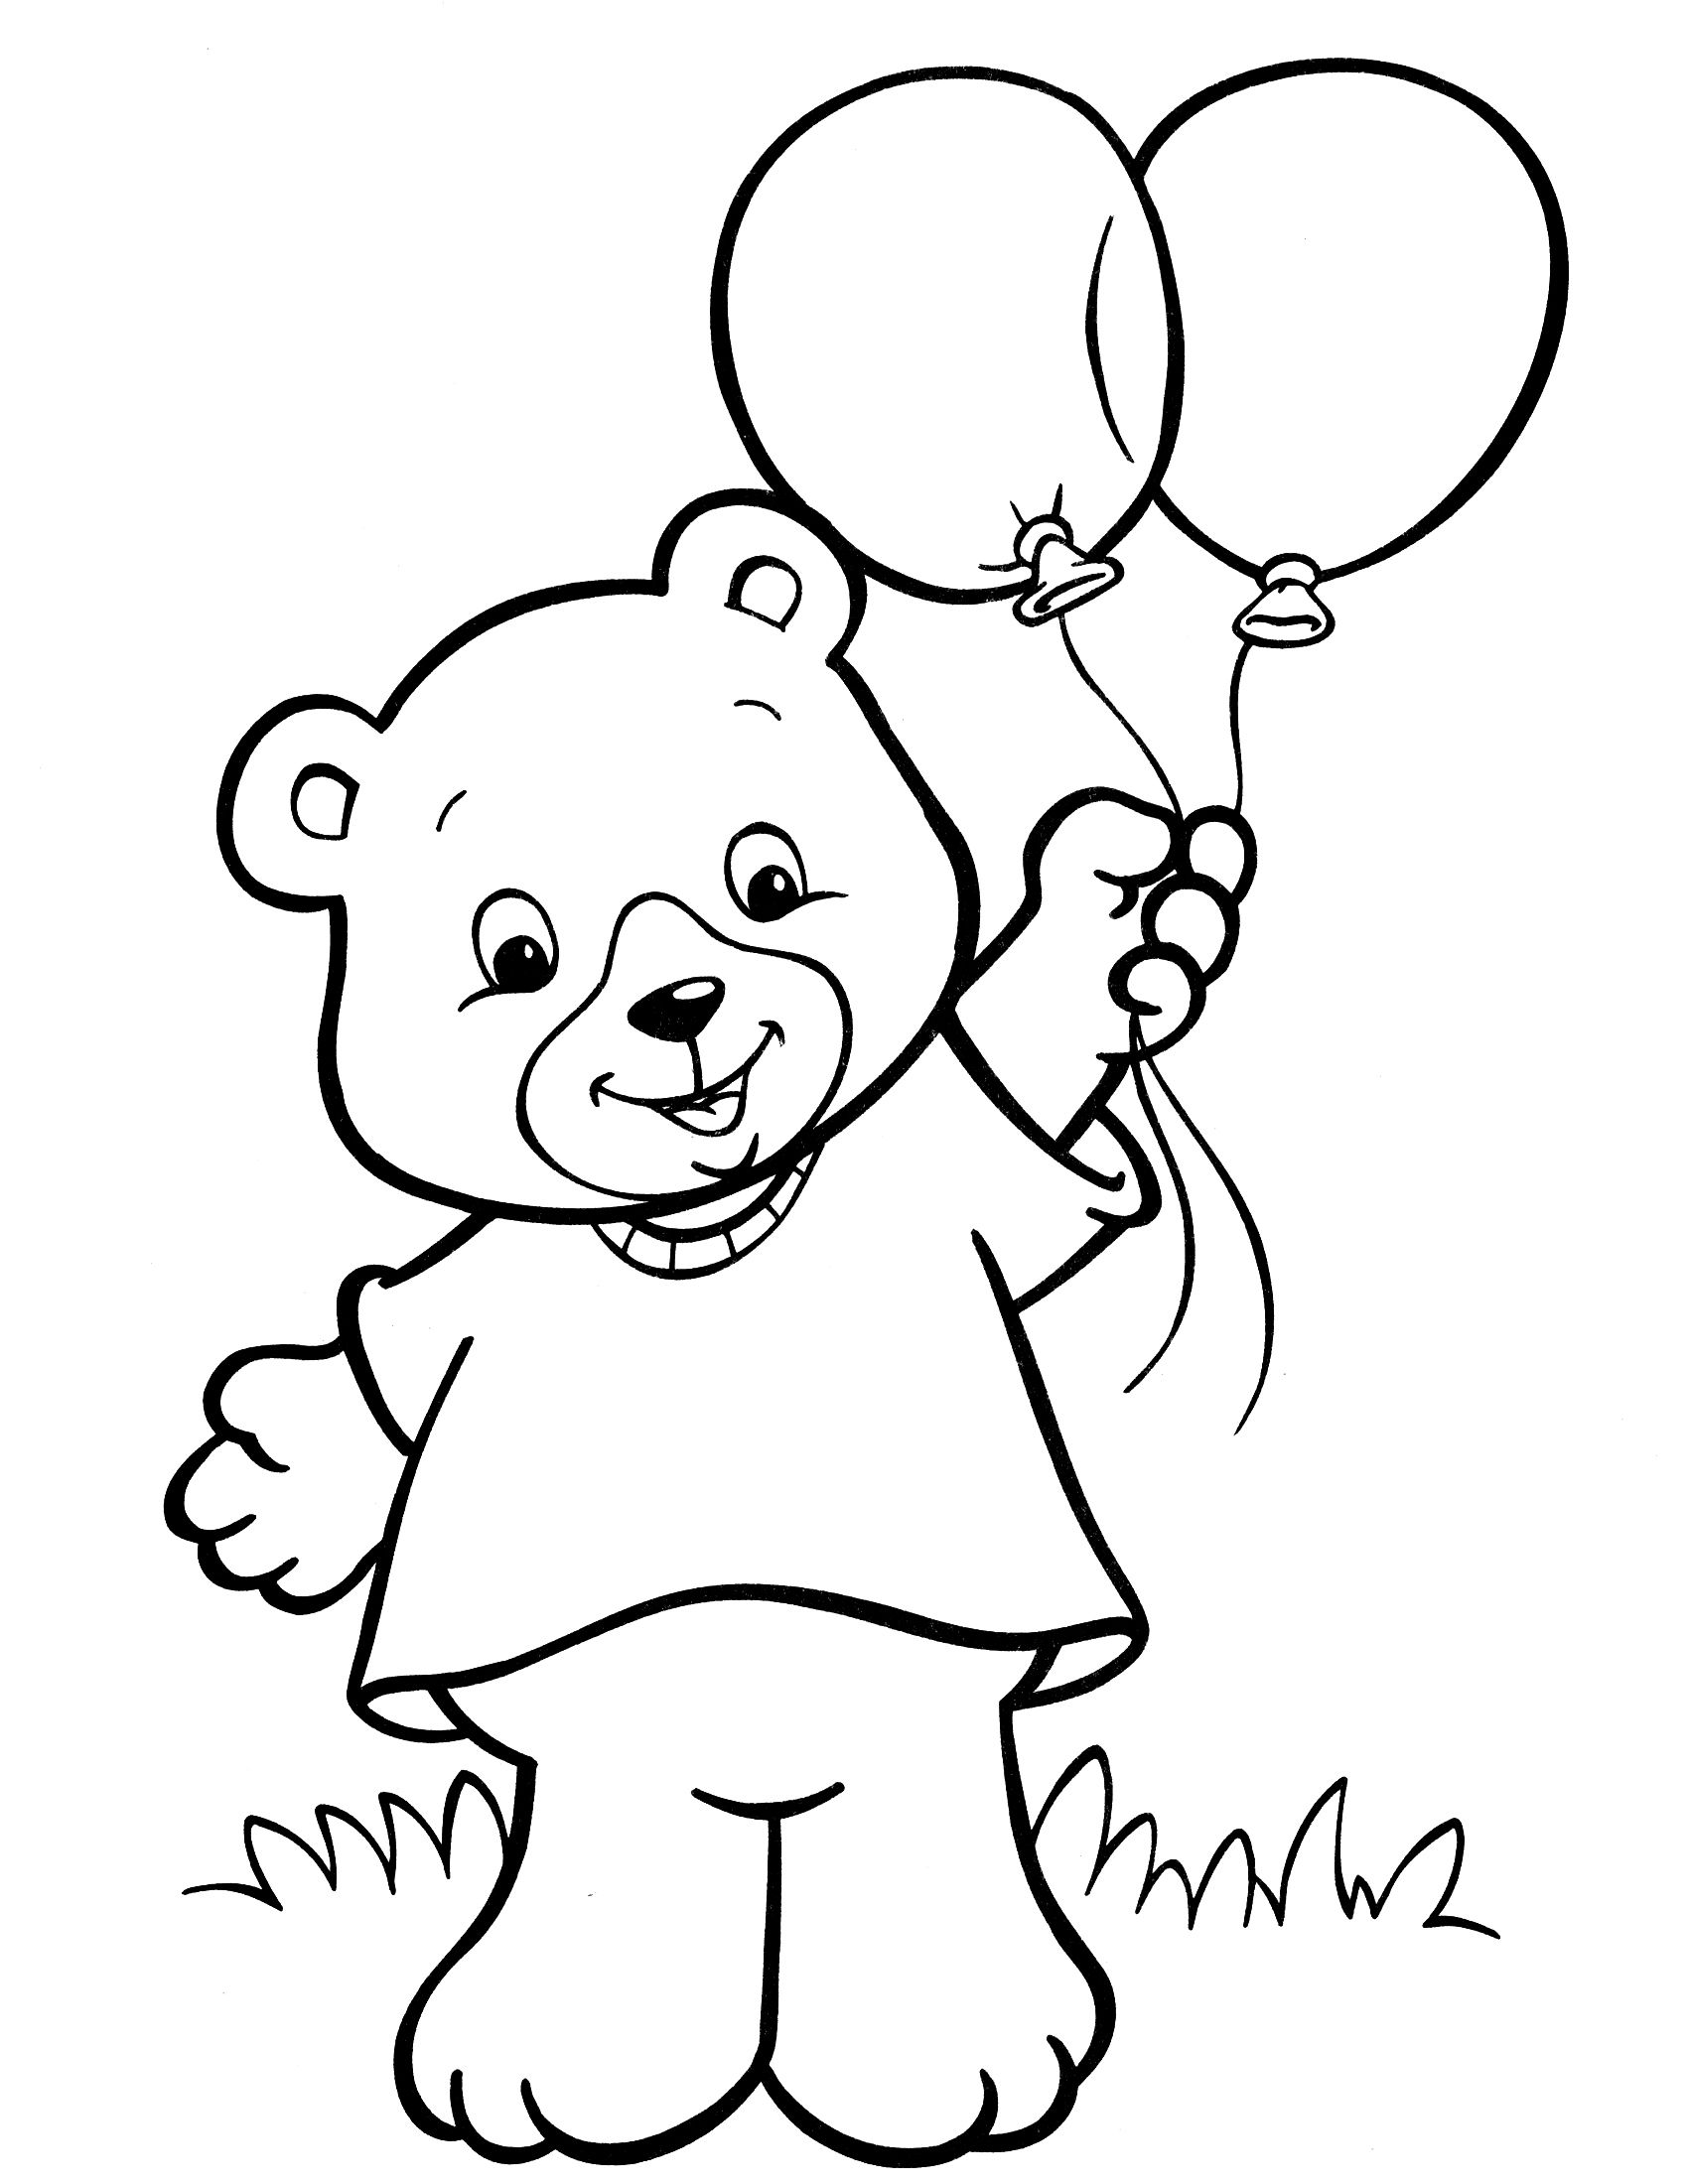 Crayola Coloring Pages Crayola Coloring Page 34 Easy Coloring